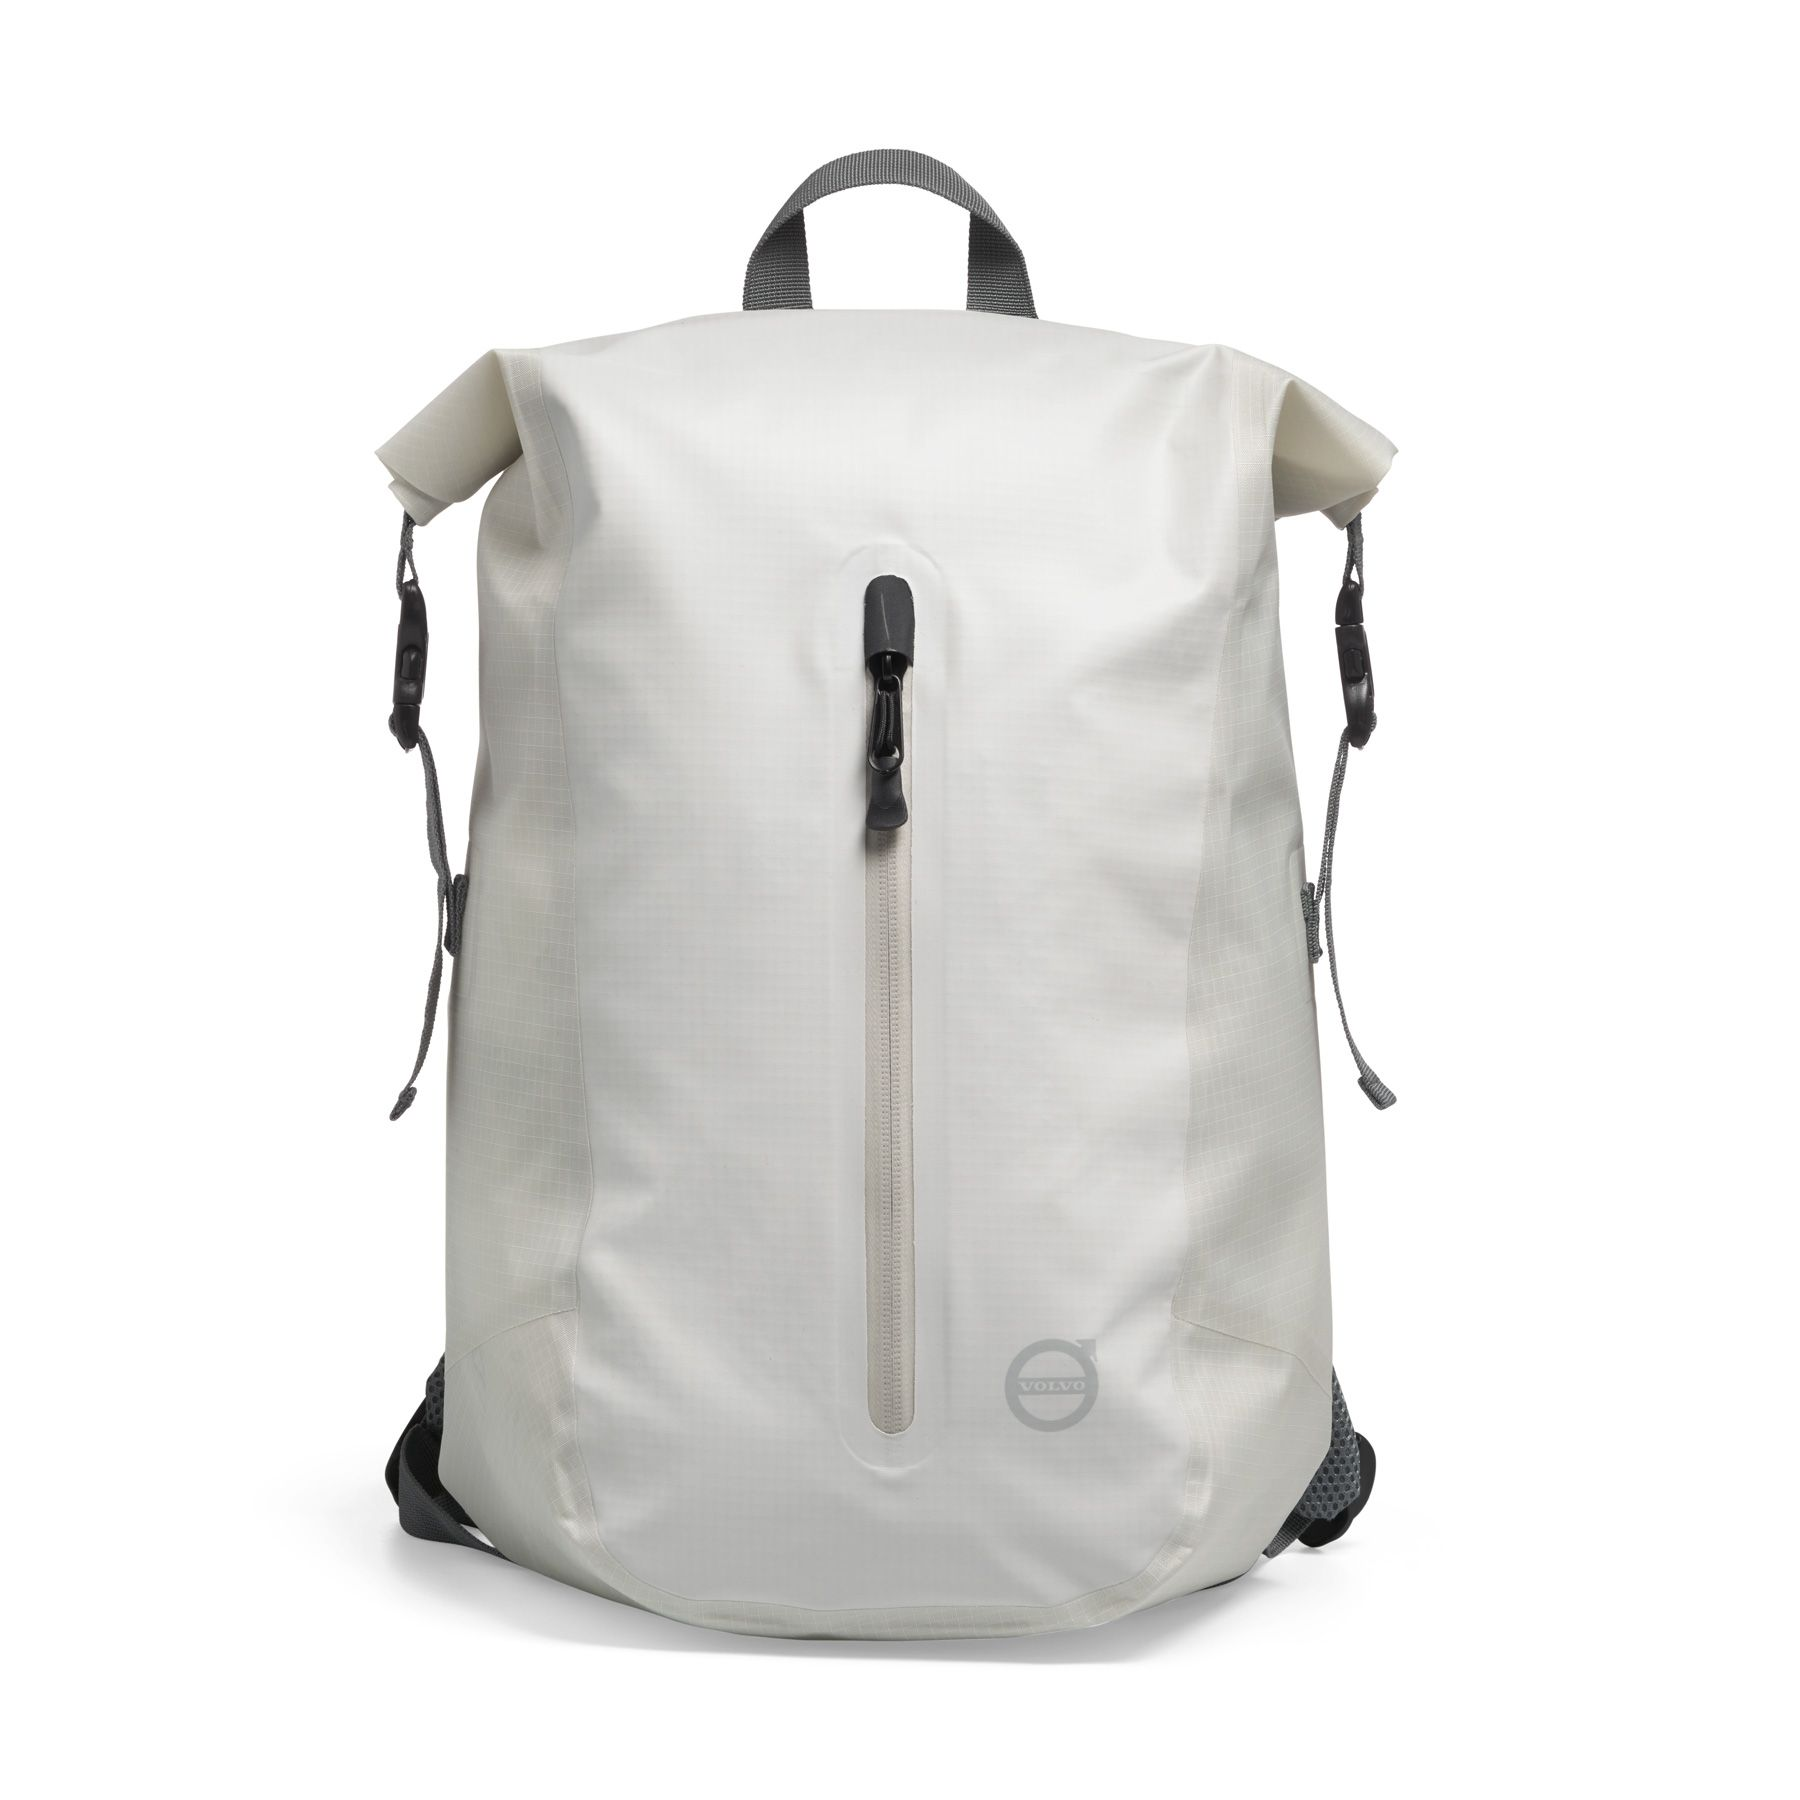 Volvo Car Lifestyle Collection Shop. New Waterproof Backpack ... 069ac1aeb6e6b